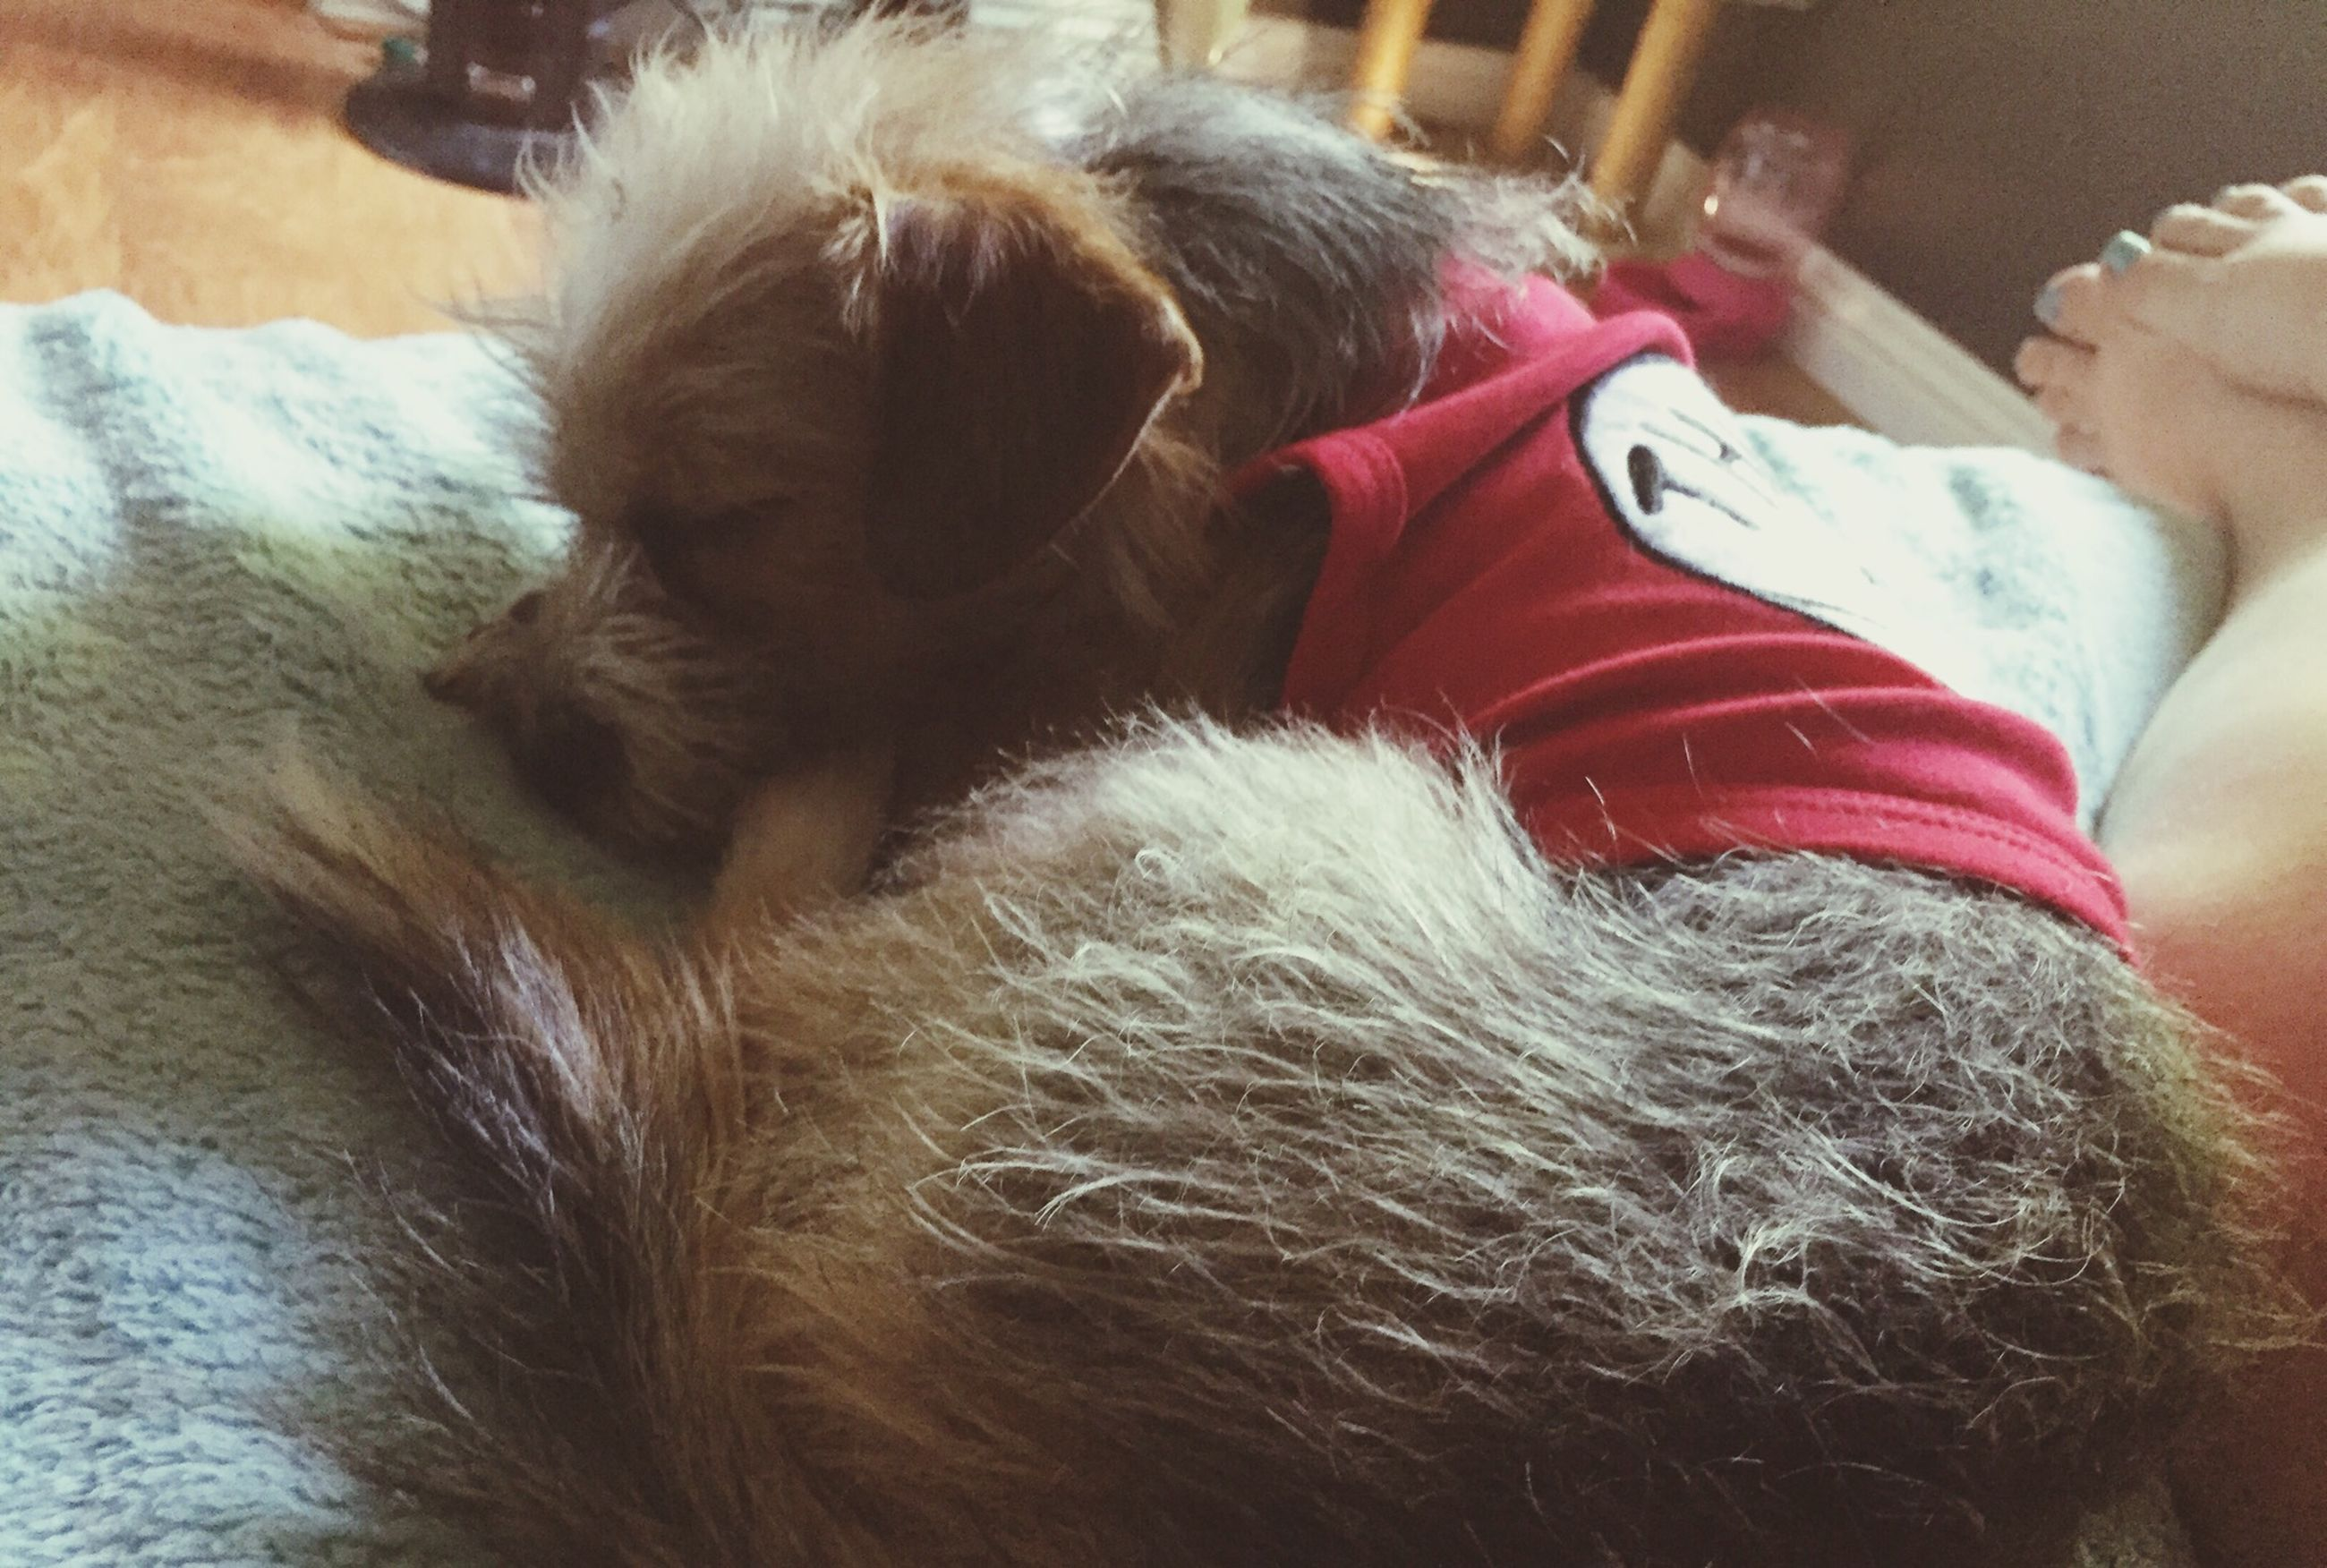 domestic animals, indoors, pets, animal themes, mammal, one animal, dog, relaxation, home interior, sleeping, close-up, resting, lying down, animal hair, high angle view, bed, animal head, two animals, home, part of